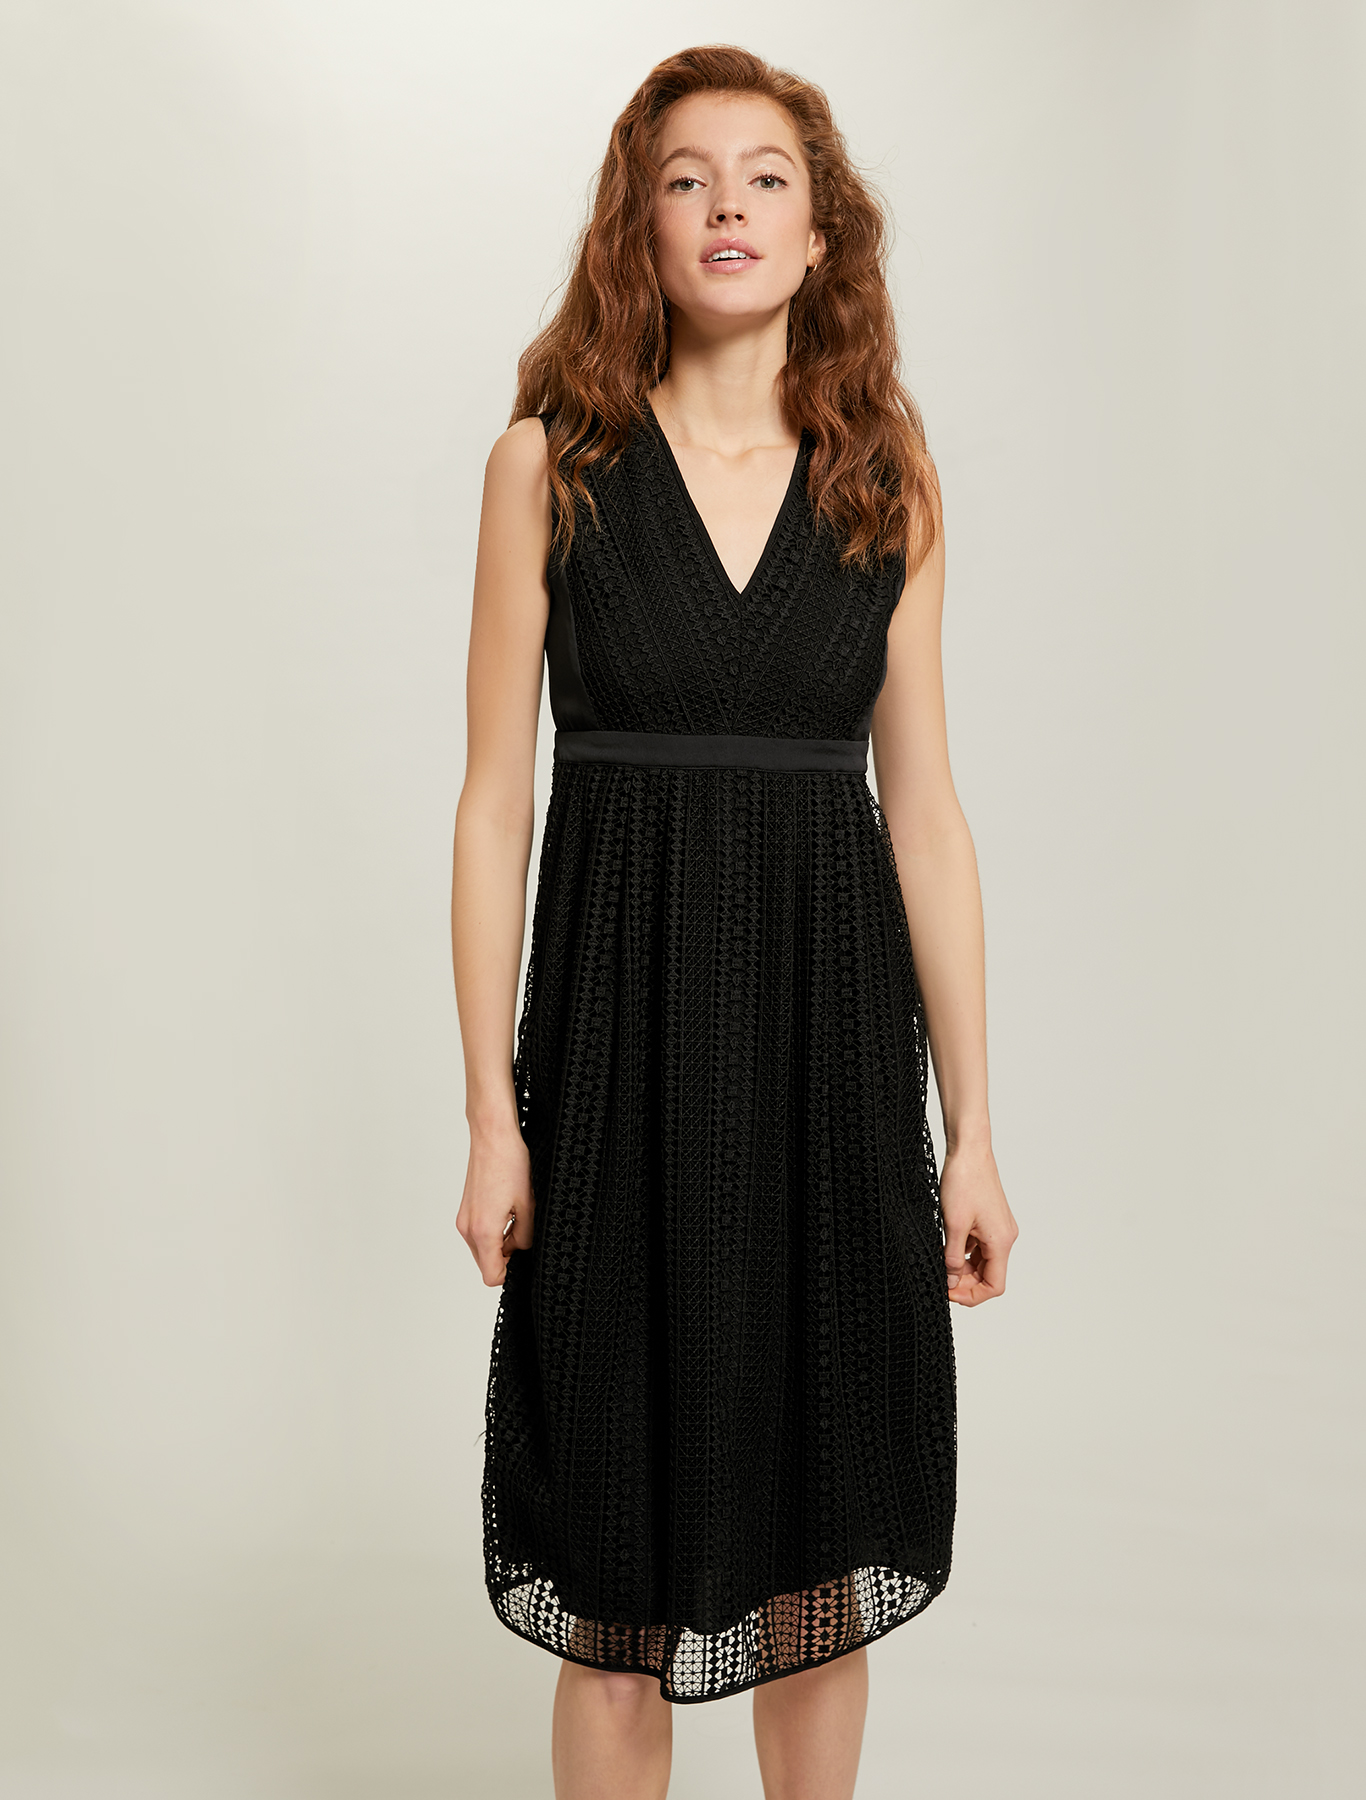 Geometric macramé dress - black - pennyblack